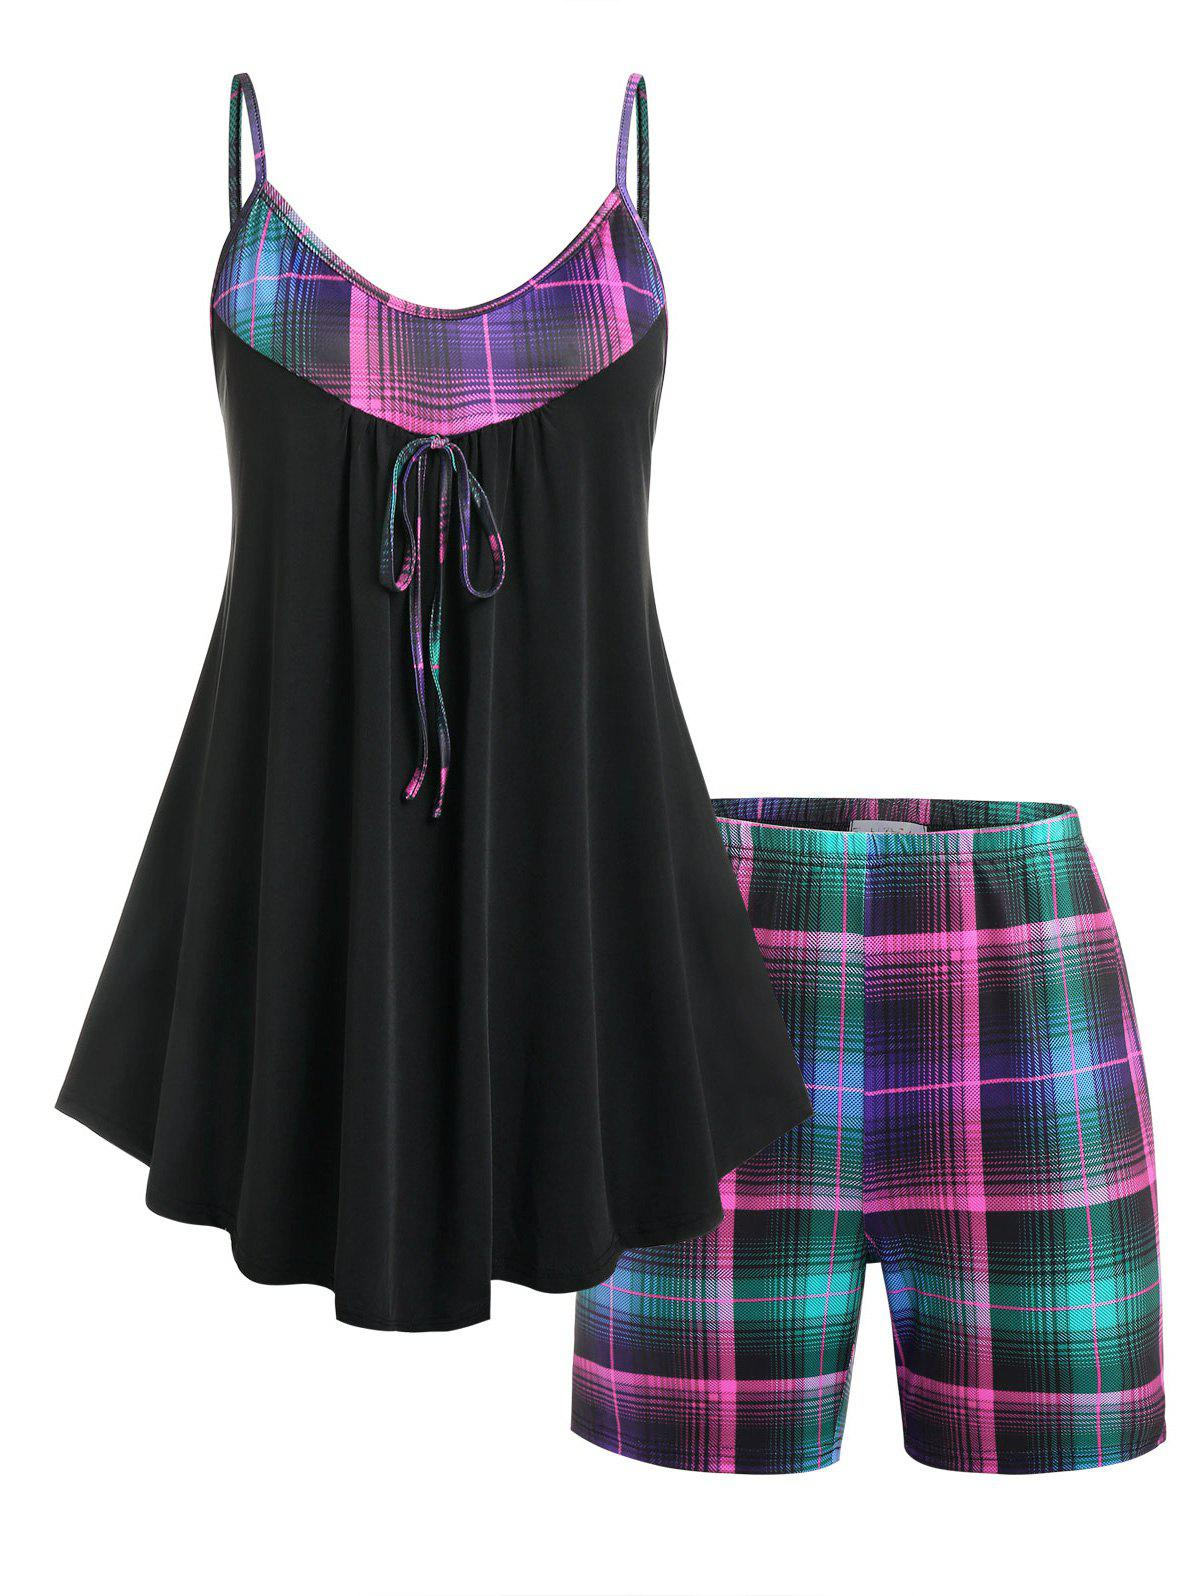 Affordable Plus Size Plaid Skirted PJ Cami Top and Shorts Set